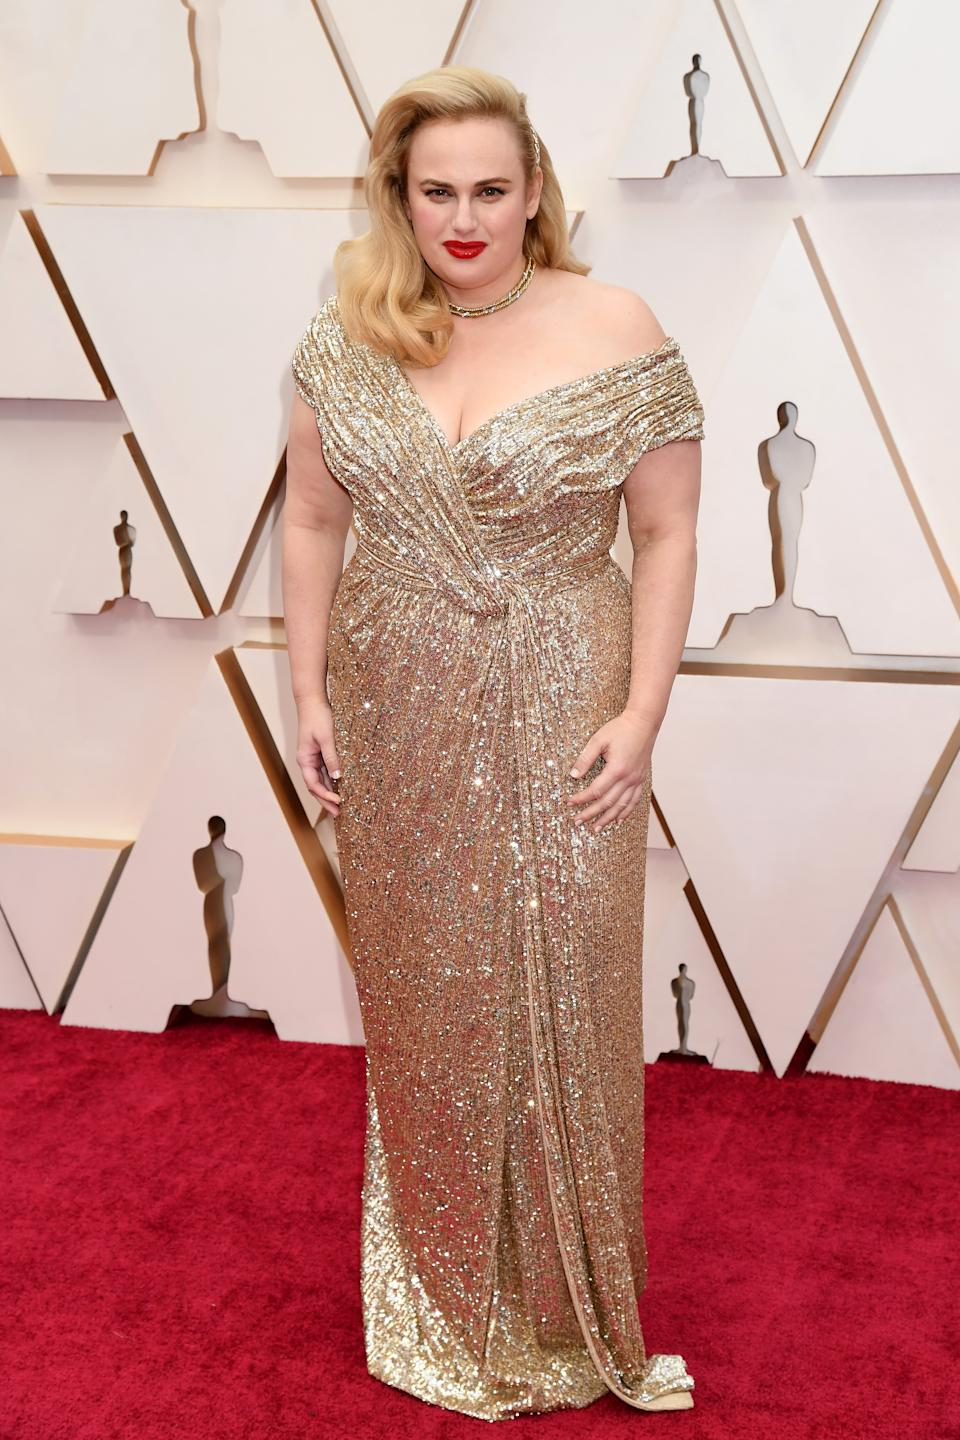 Wilson channelled Oscar gold in a sparkling gown by Jason Wu.